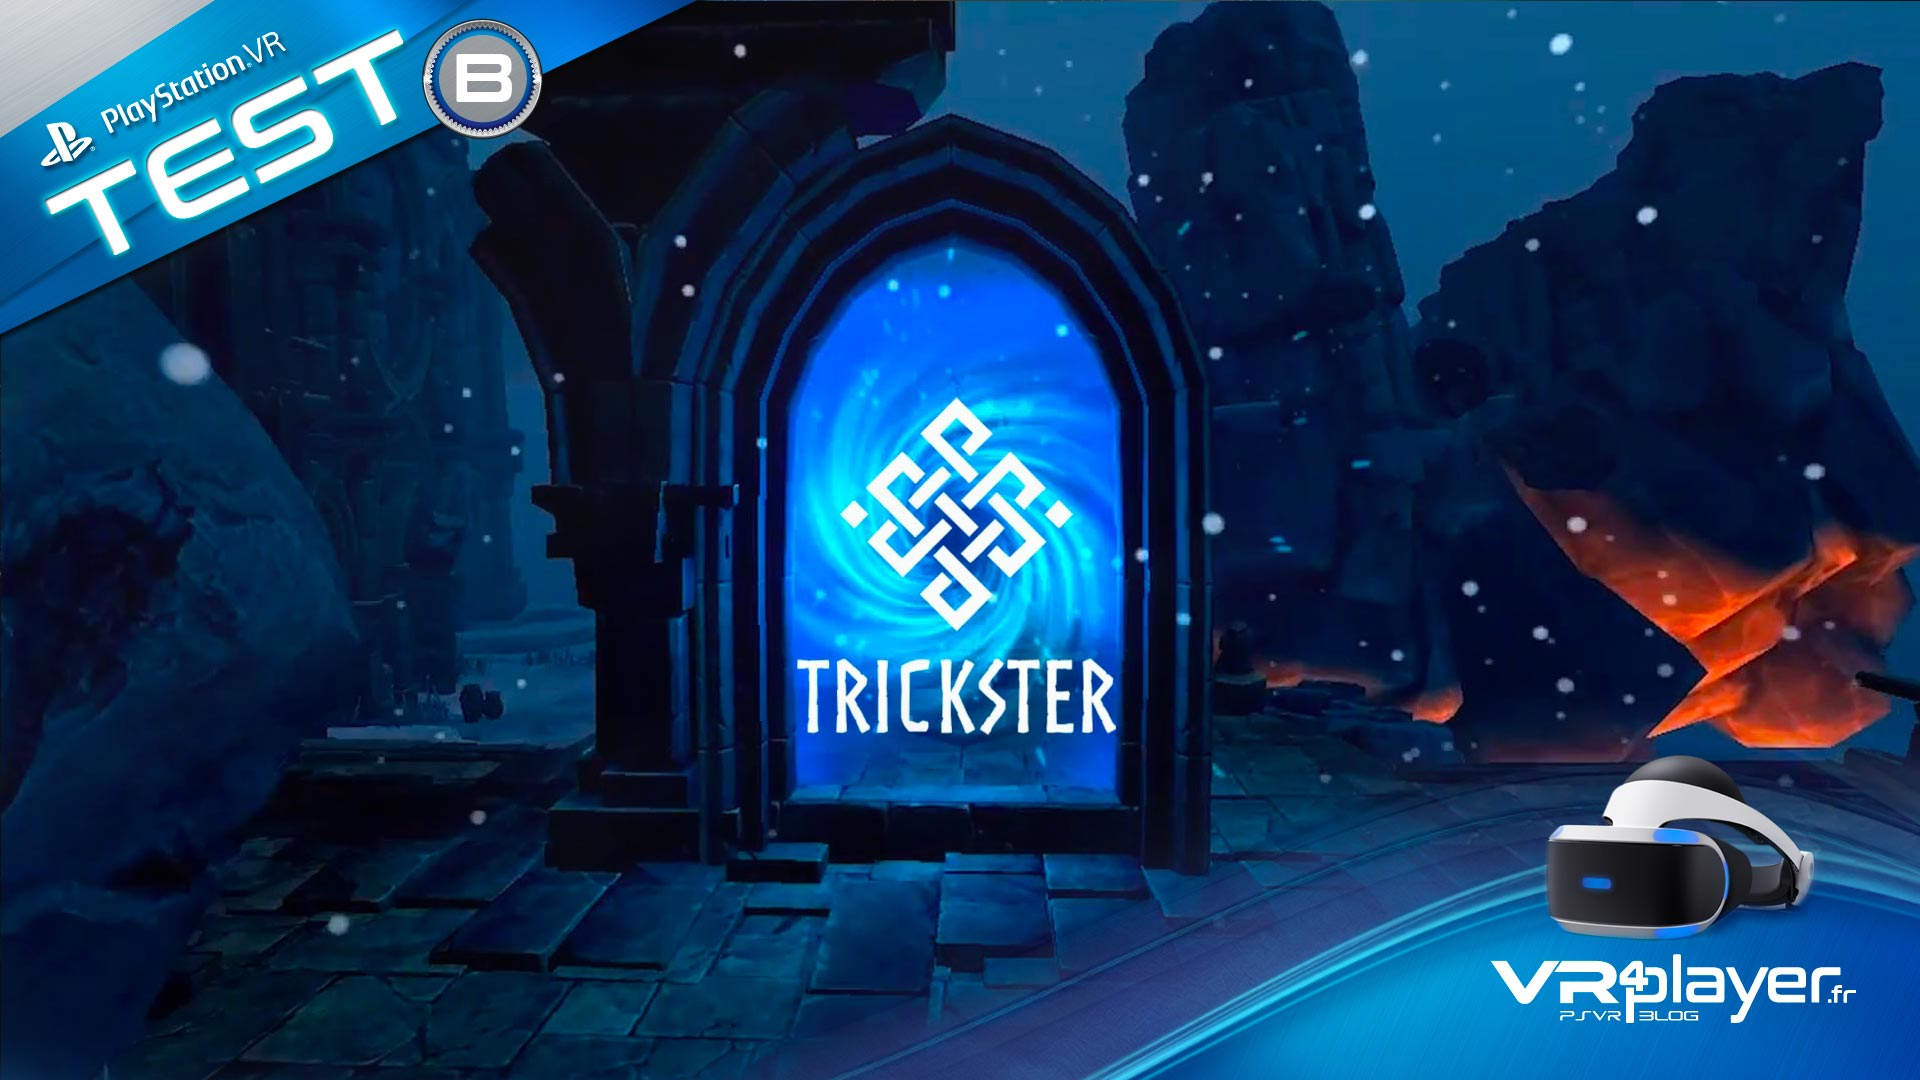 Trickster VR sur PlayStation VR PSVR VR4player.fr